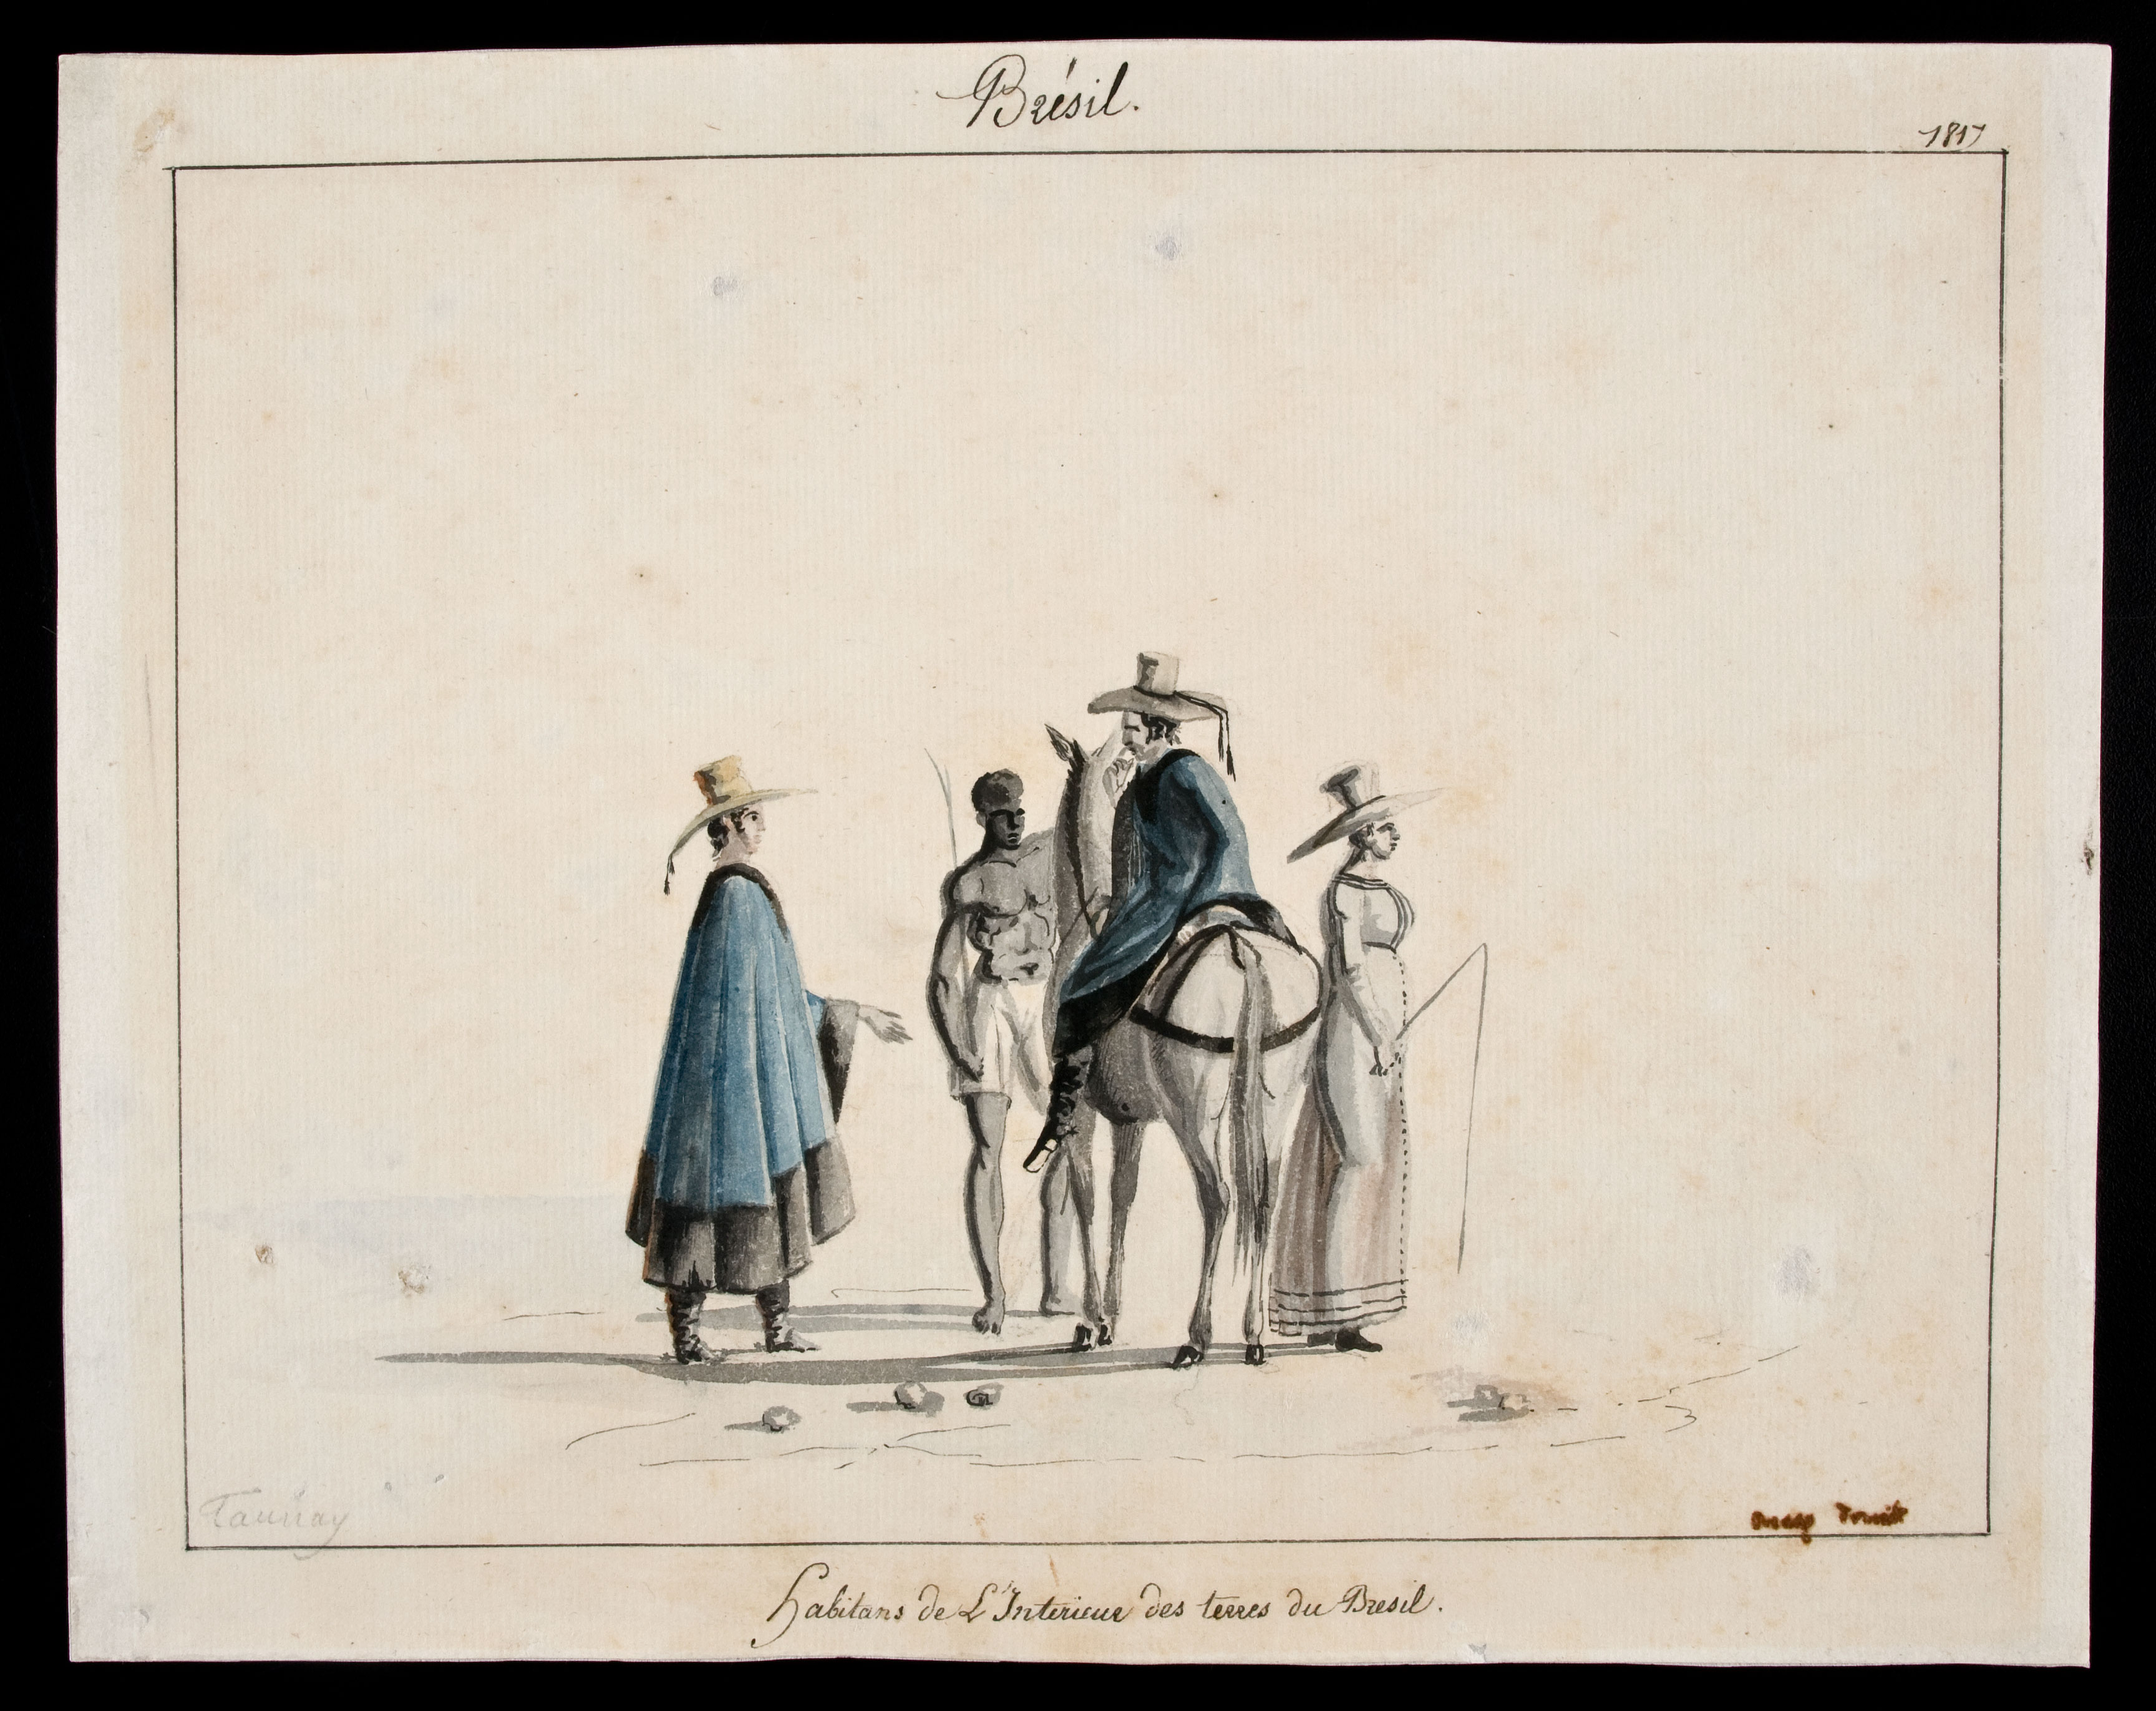 "This image is a painting. Title: Habitants de L'intérieur des terres du Brésil (Inhabitants of Brazil's Countryside), 1818. Artist: Aimé-Adrien Taunay. Medium and support: Watercolor on paper. The painting features four characters, three of whom are men and one woman. One of the male figures is sitting on a horse, while the other, on the left, seems to speak to him. An enslaved black male figure strokes the horse's head. The female figure, wearing a hat and dress, stands on the horse's right side. The painting is framed by a thin line where the name ""Brésil"" can be seen in the upper central region of the frame, next to the year in the upper right corner. The title in under the frame in the lower central part. The author's signature can be found, inside the frame, in the lower left corner - opposing the illegible inscription in the lower right corner."